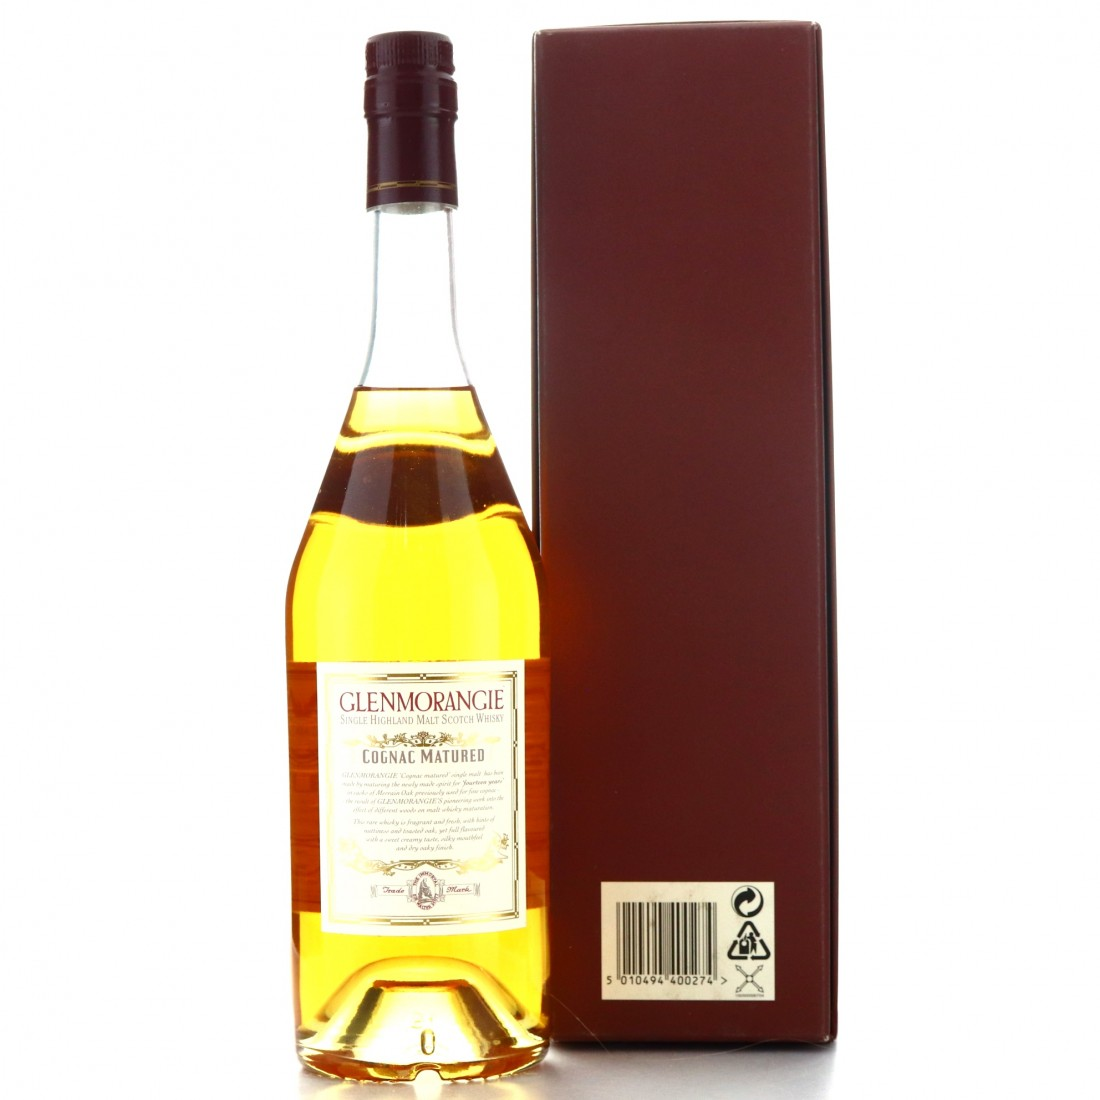 Glenmorangie 14 Year Old Cognac Matured